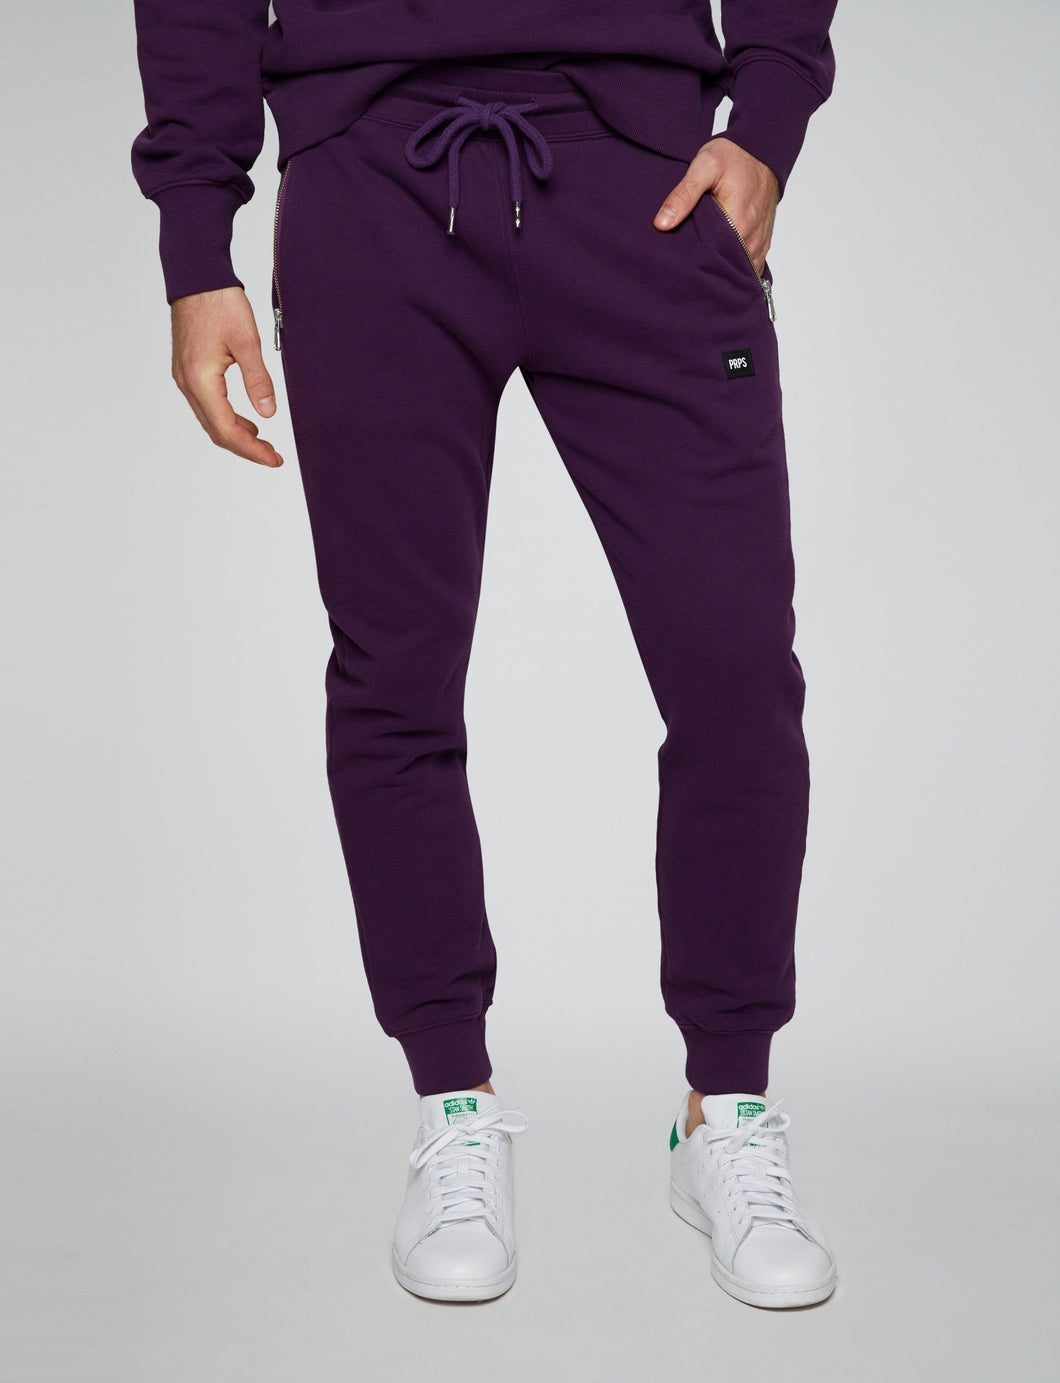 Church Sweatpant (Purple)